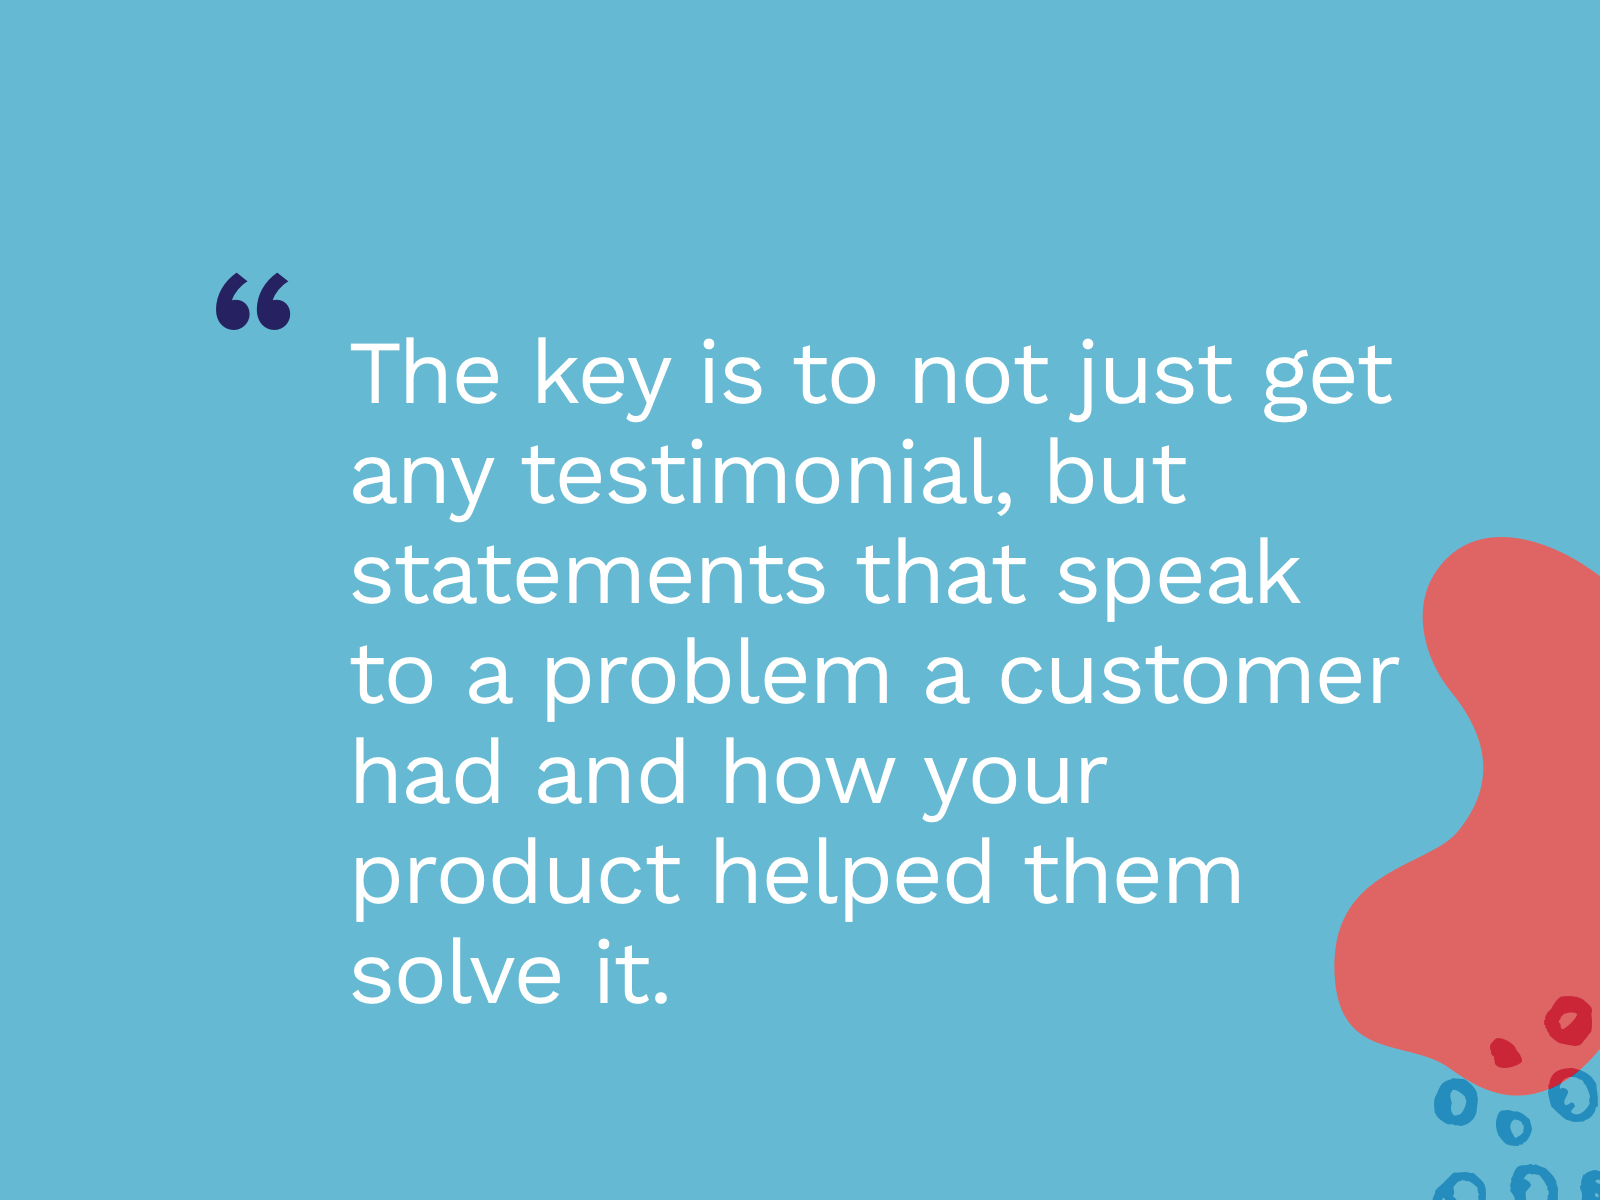 Quote: :The key is to not just get any testimonial, but statements that speak to a problem a customer had and how your product helped them solve it.""